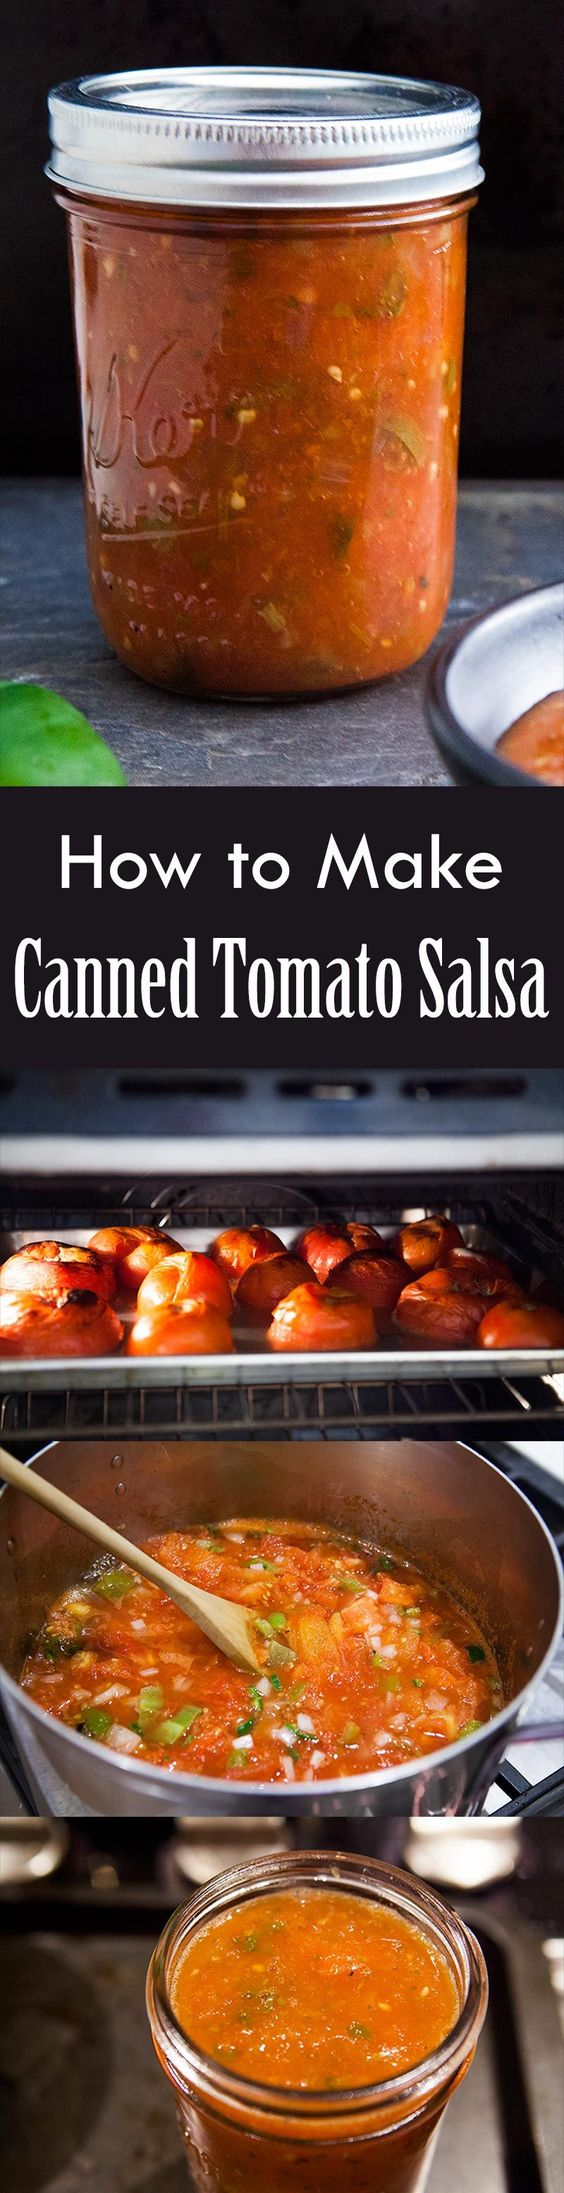 ... start with canned tomato salsa herbs fresh canning recipe chile salsa